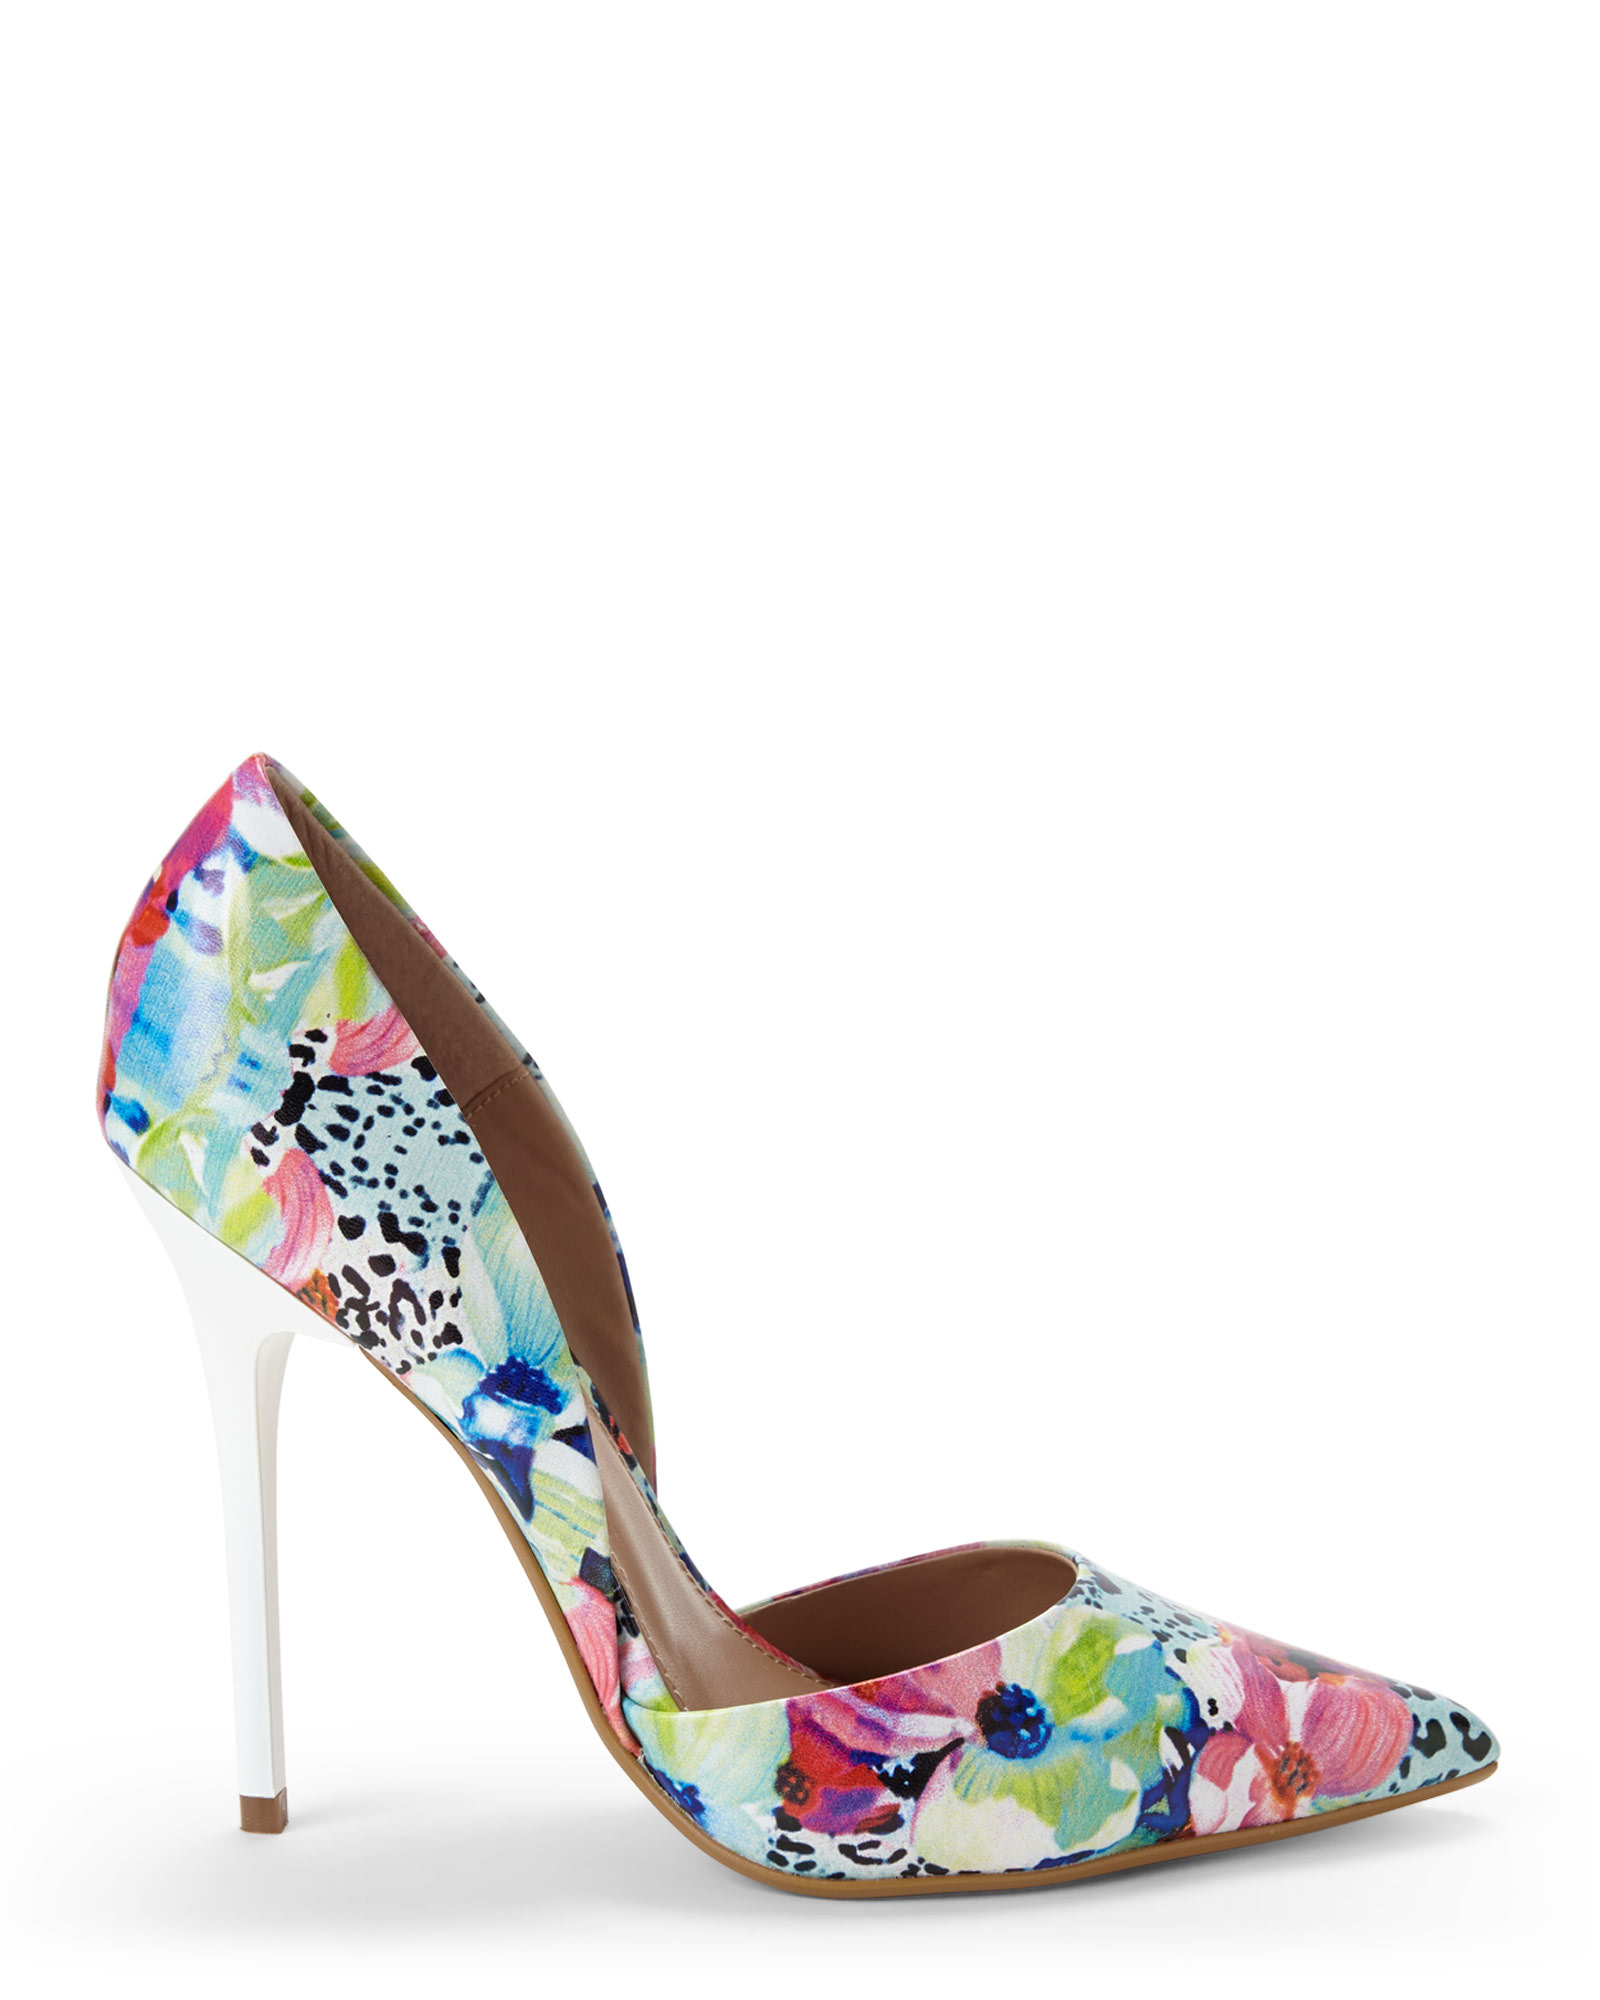 59a2499e6a1 Lyst - Steve Madden Floral Varcityy D Orsay Pumps in Pink